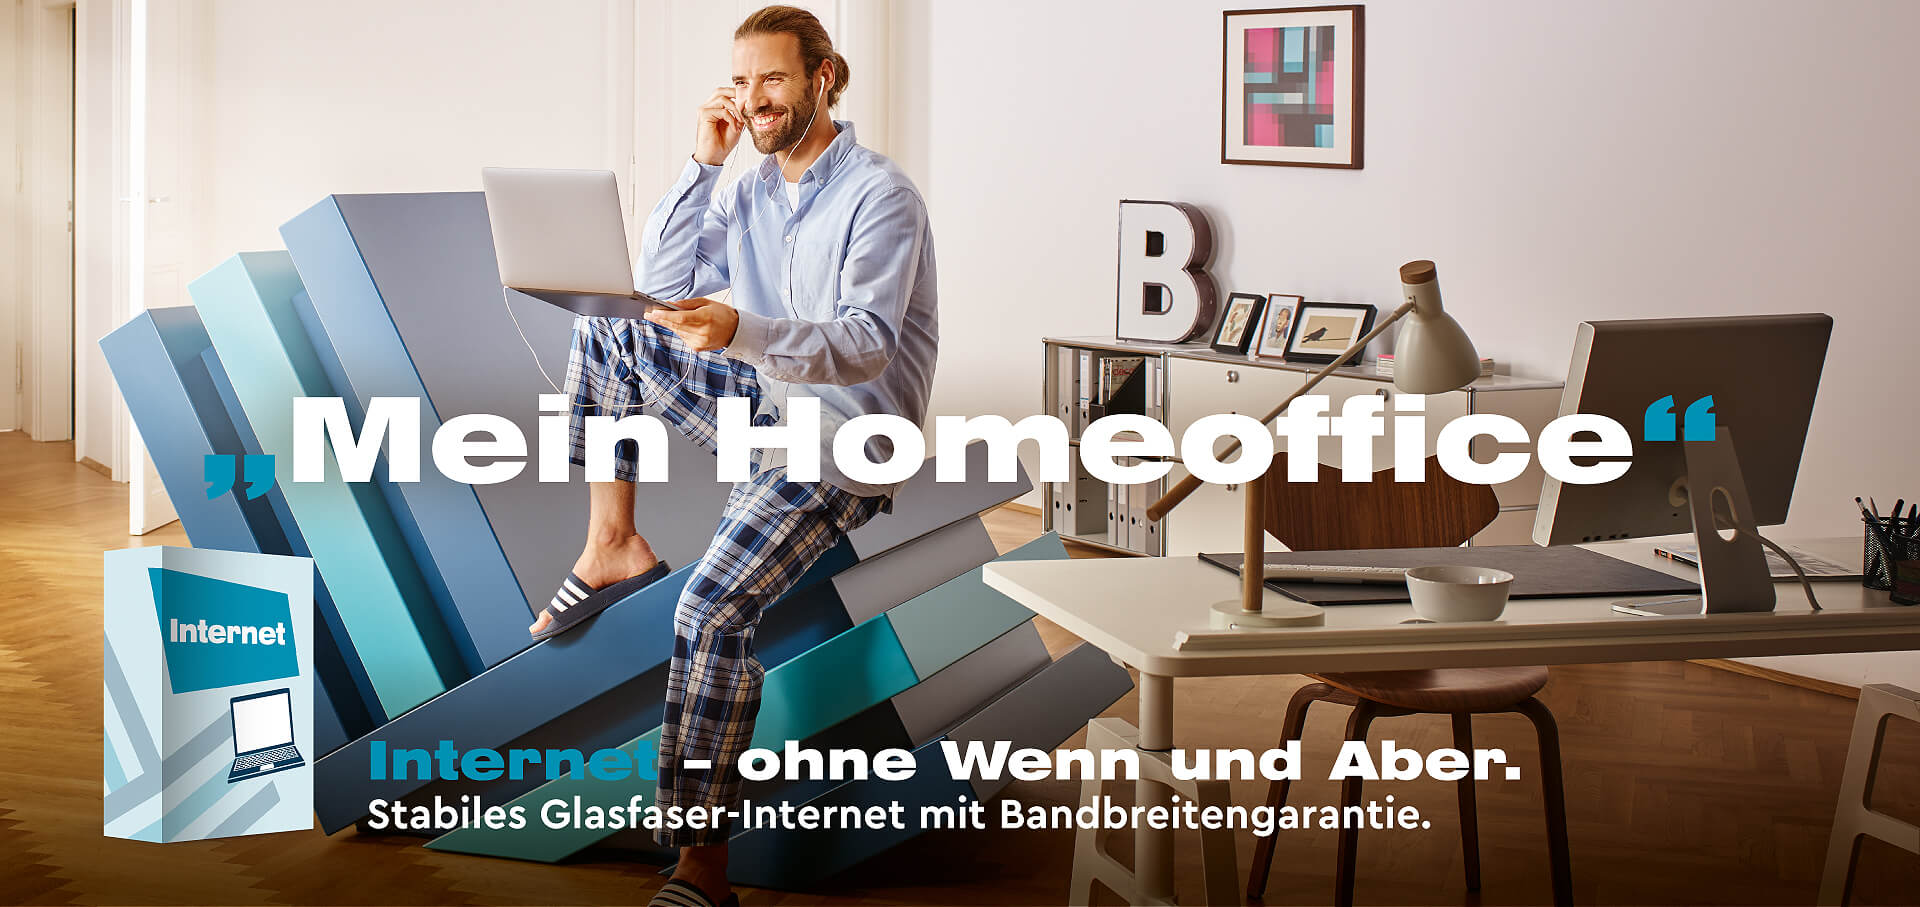 LIWEST Internet für Home Office